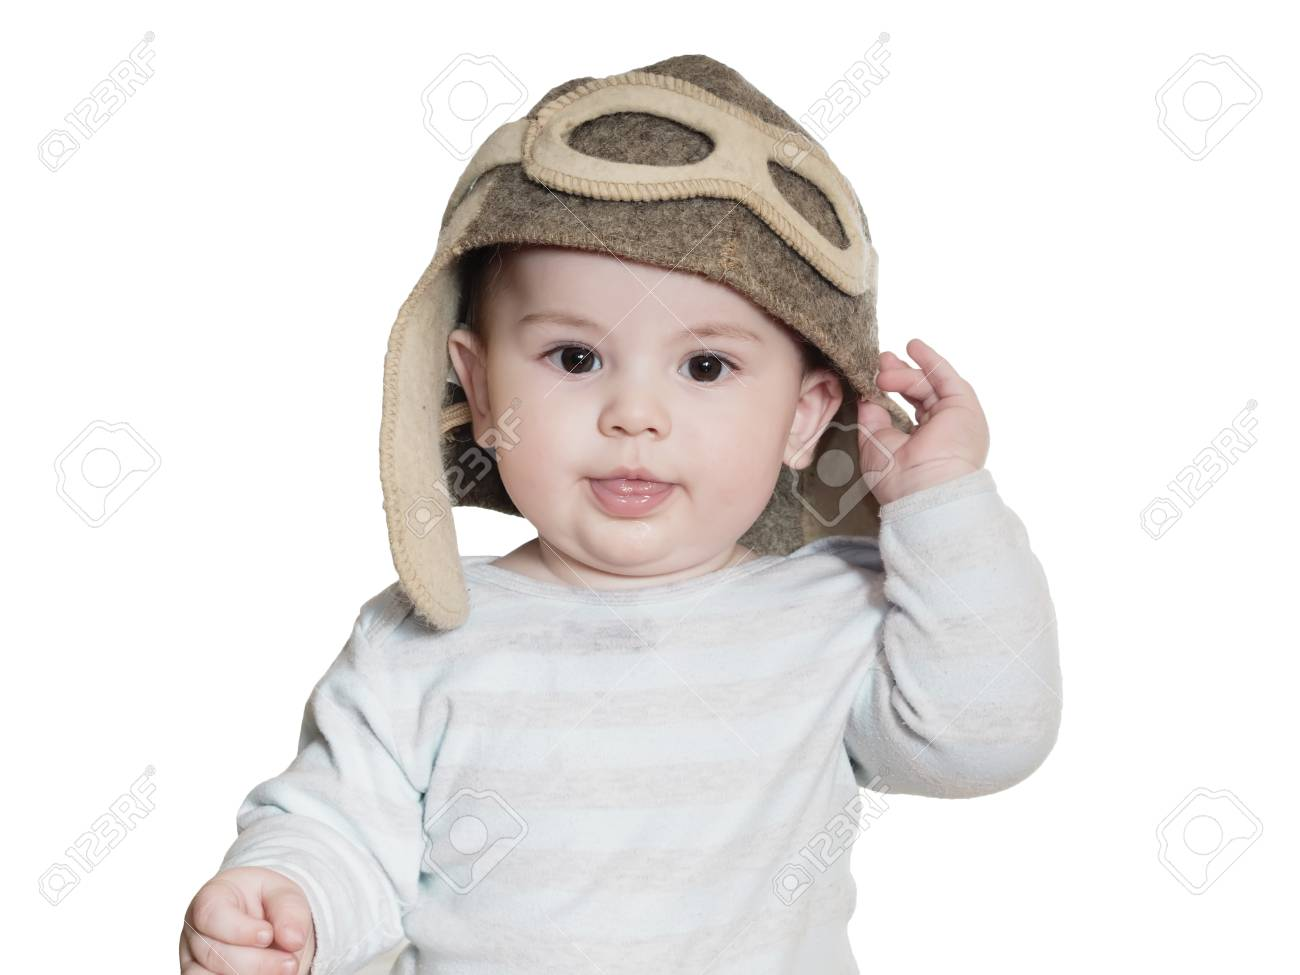 Caucasian baby boy in pilot hat isolated on white Stock Photo - 37737740 b690a3fb2a7